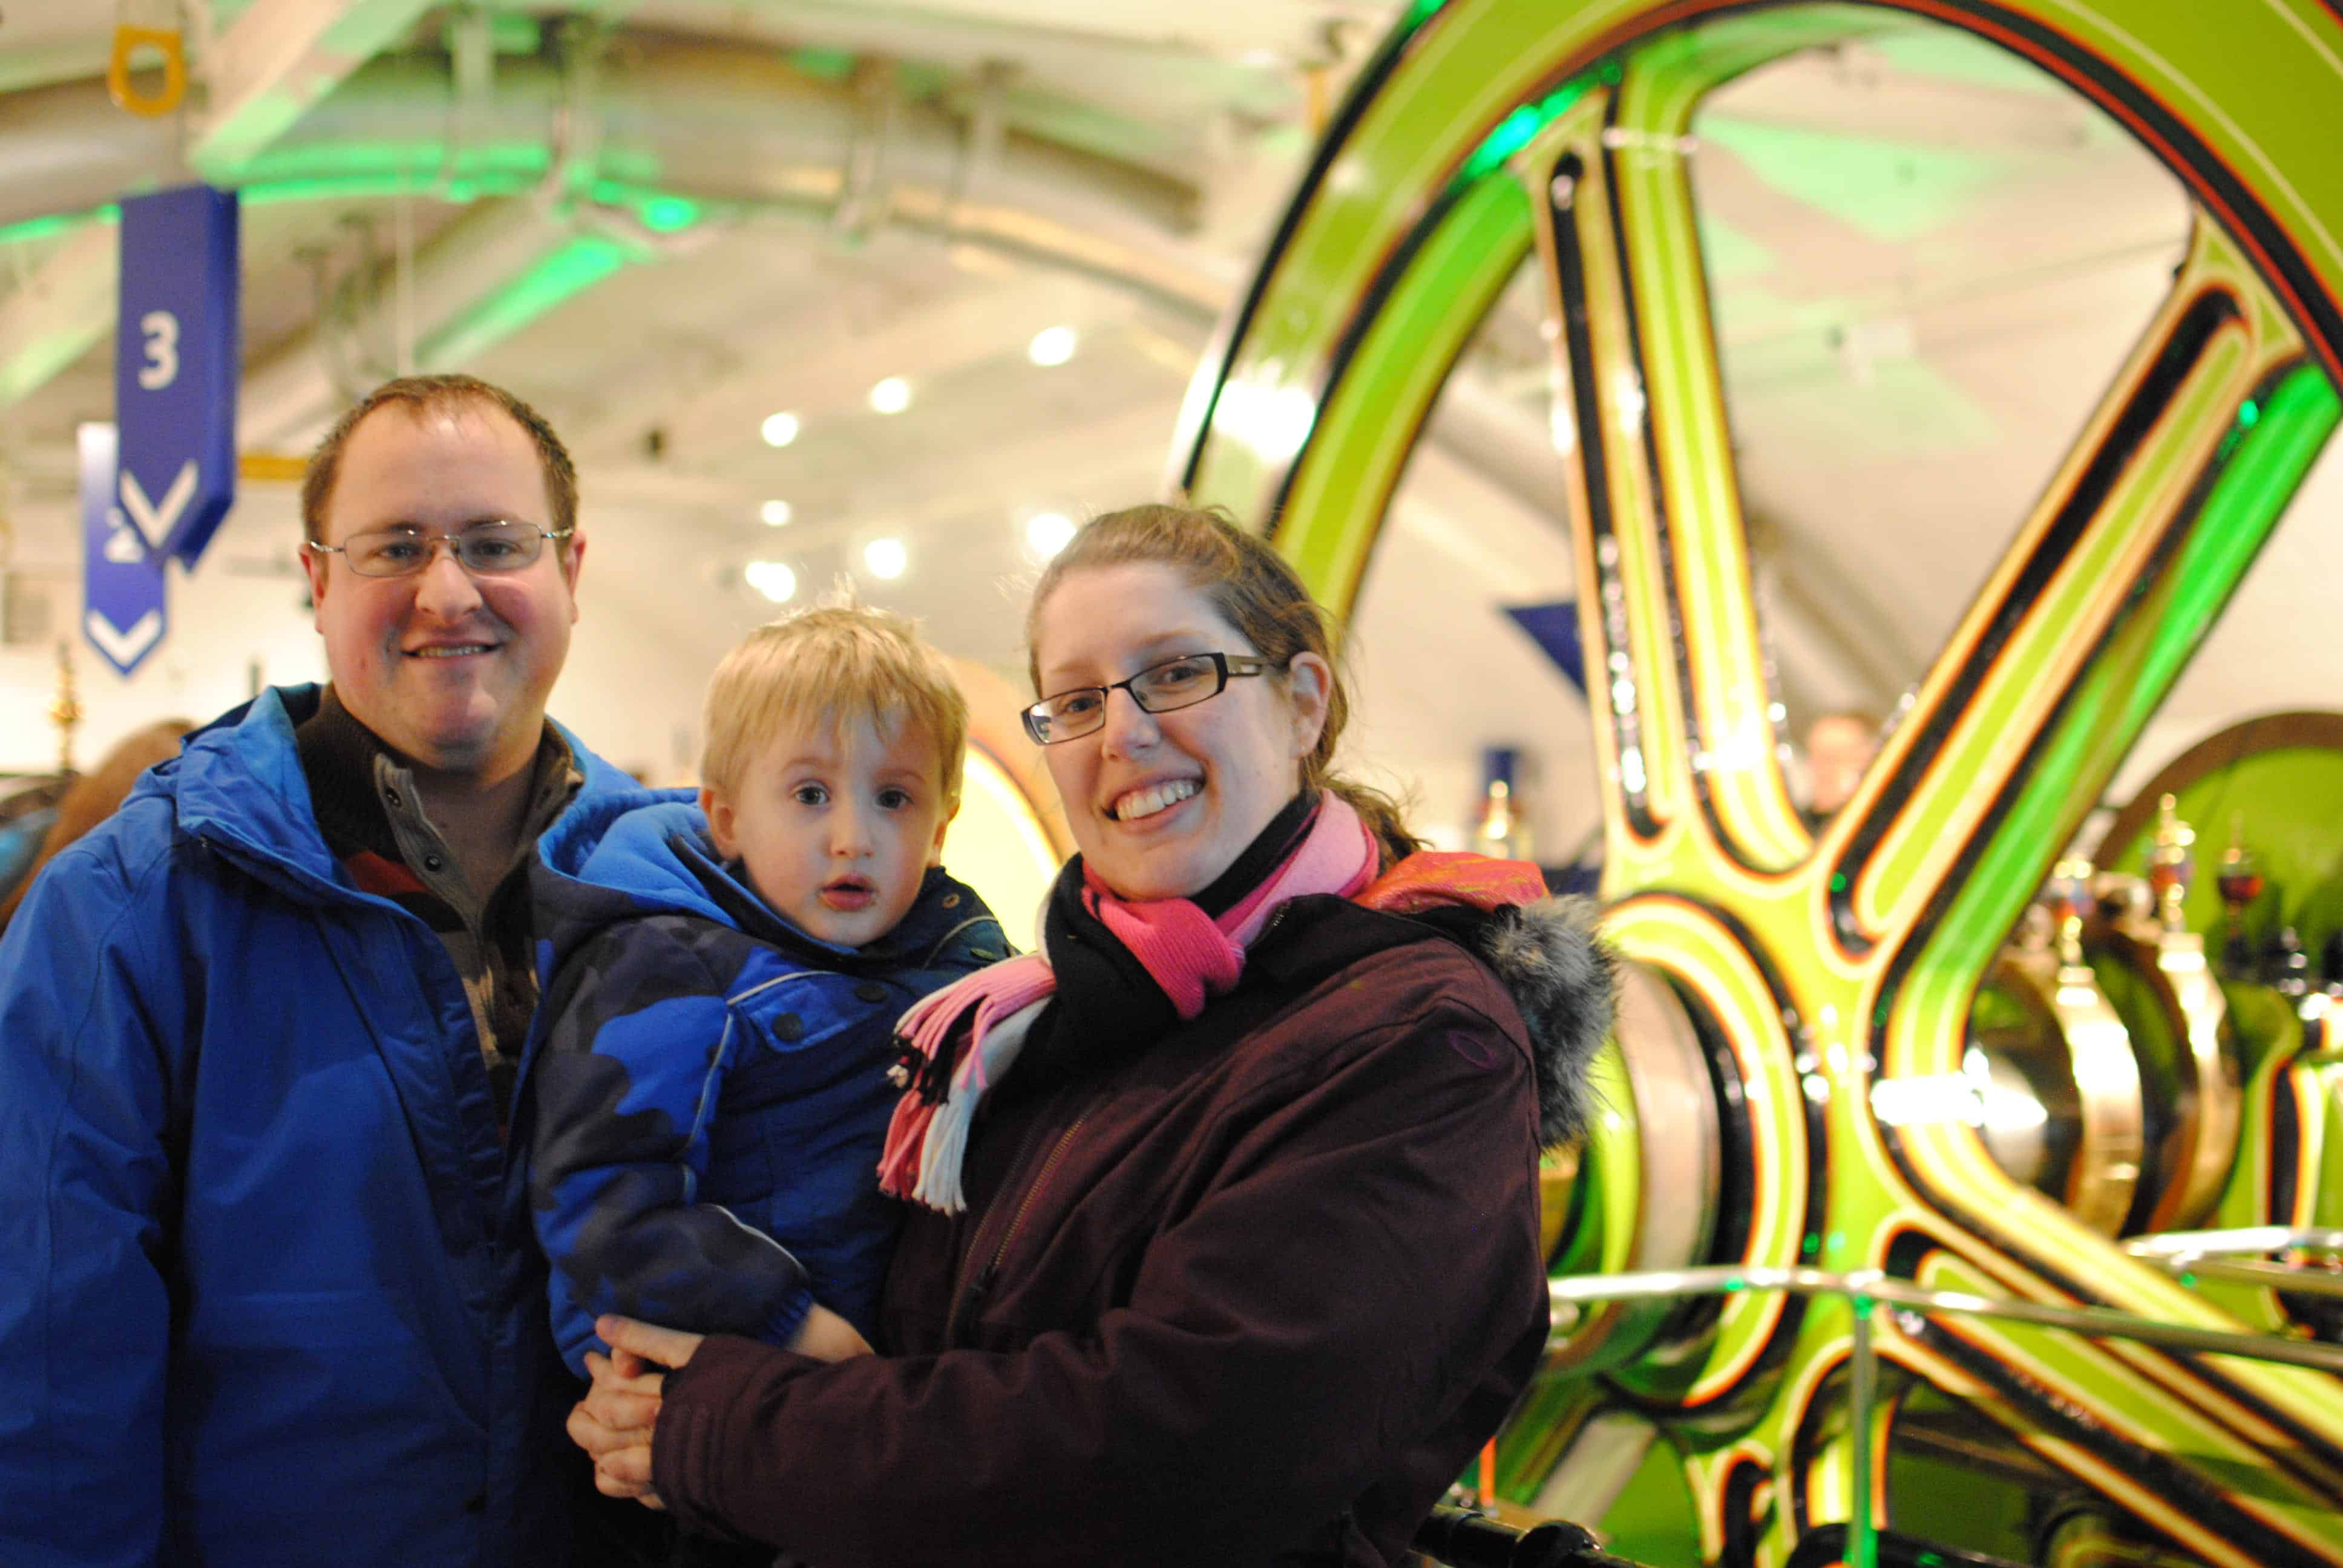 Christmas in London Itinerary With kids: London is one of the worlds great city's and can leave you overwhelmed. Learn what's open and what to do on Christmas day in London with kids